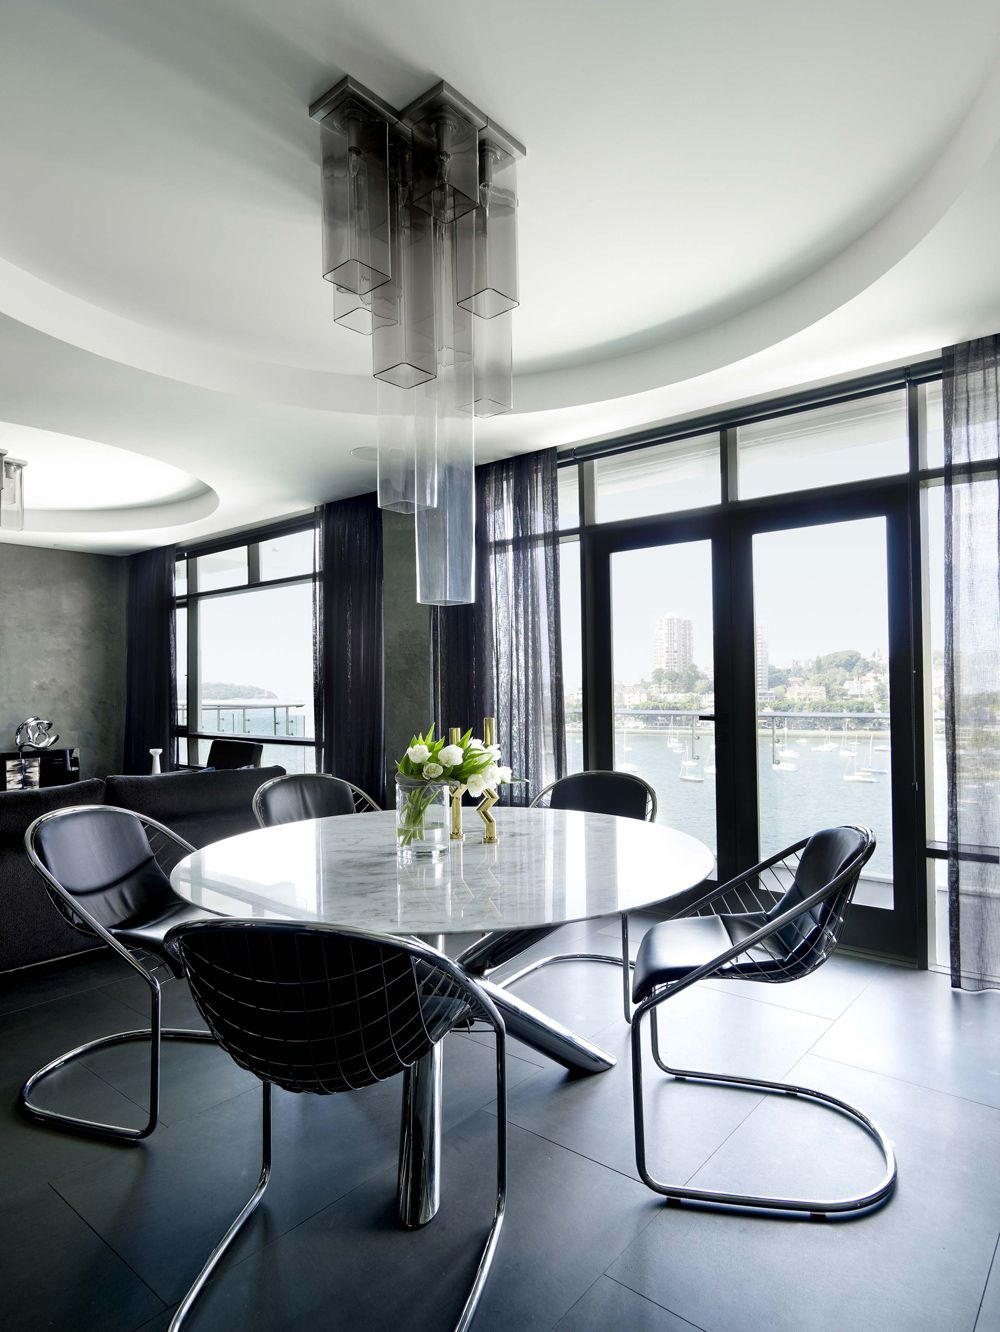 Greg natale design elizabeth bay apartment sydney for Apartment design sydney